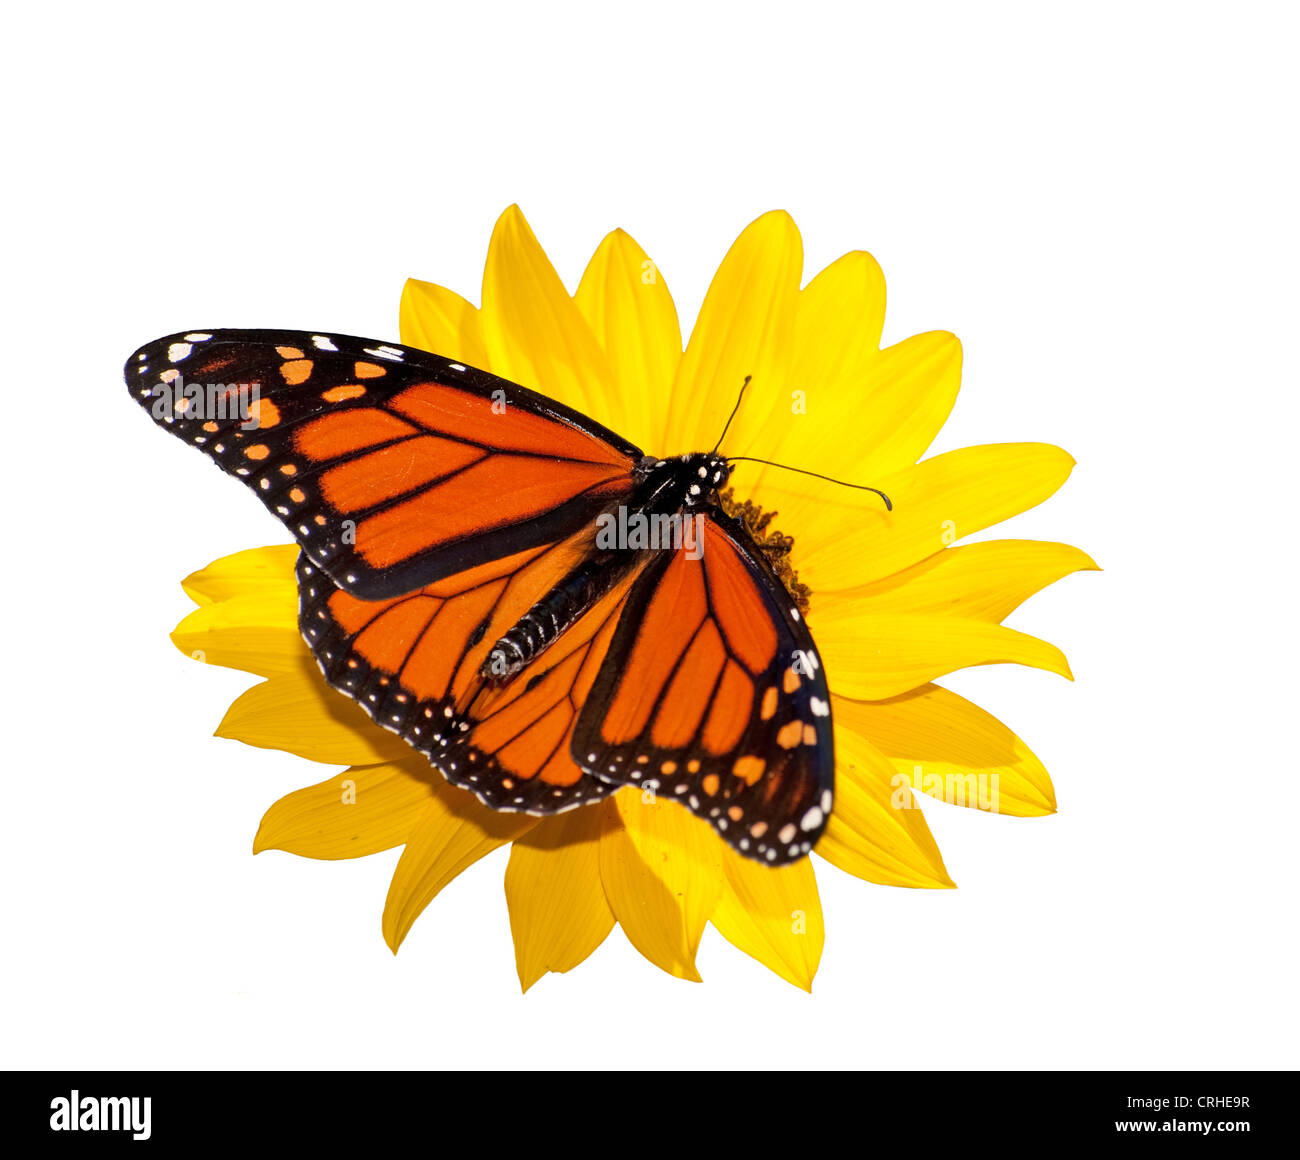 Dorsal view of a male Monarch butterfly feeding on a wild sunflower; isolated on white - Stock Image